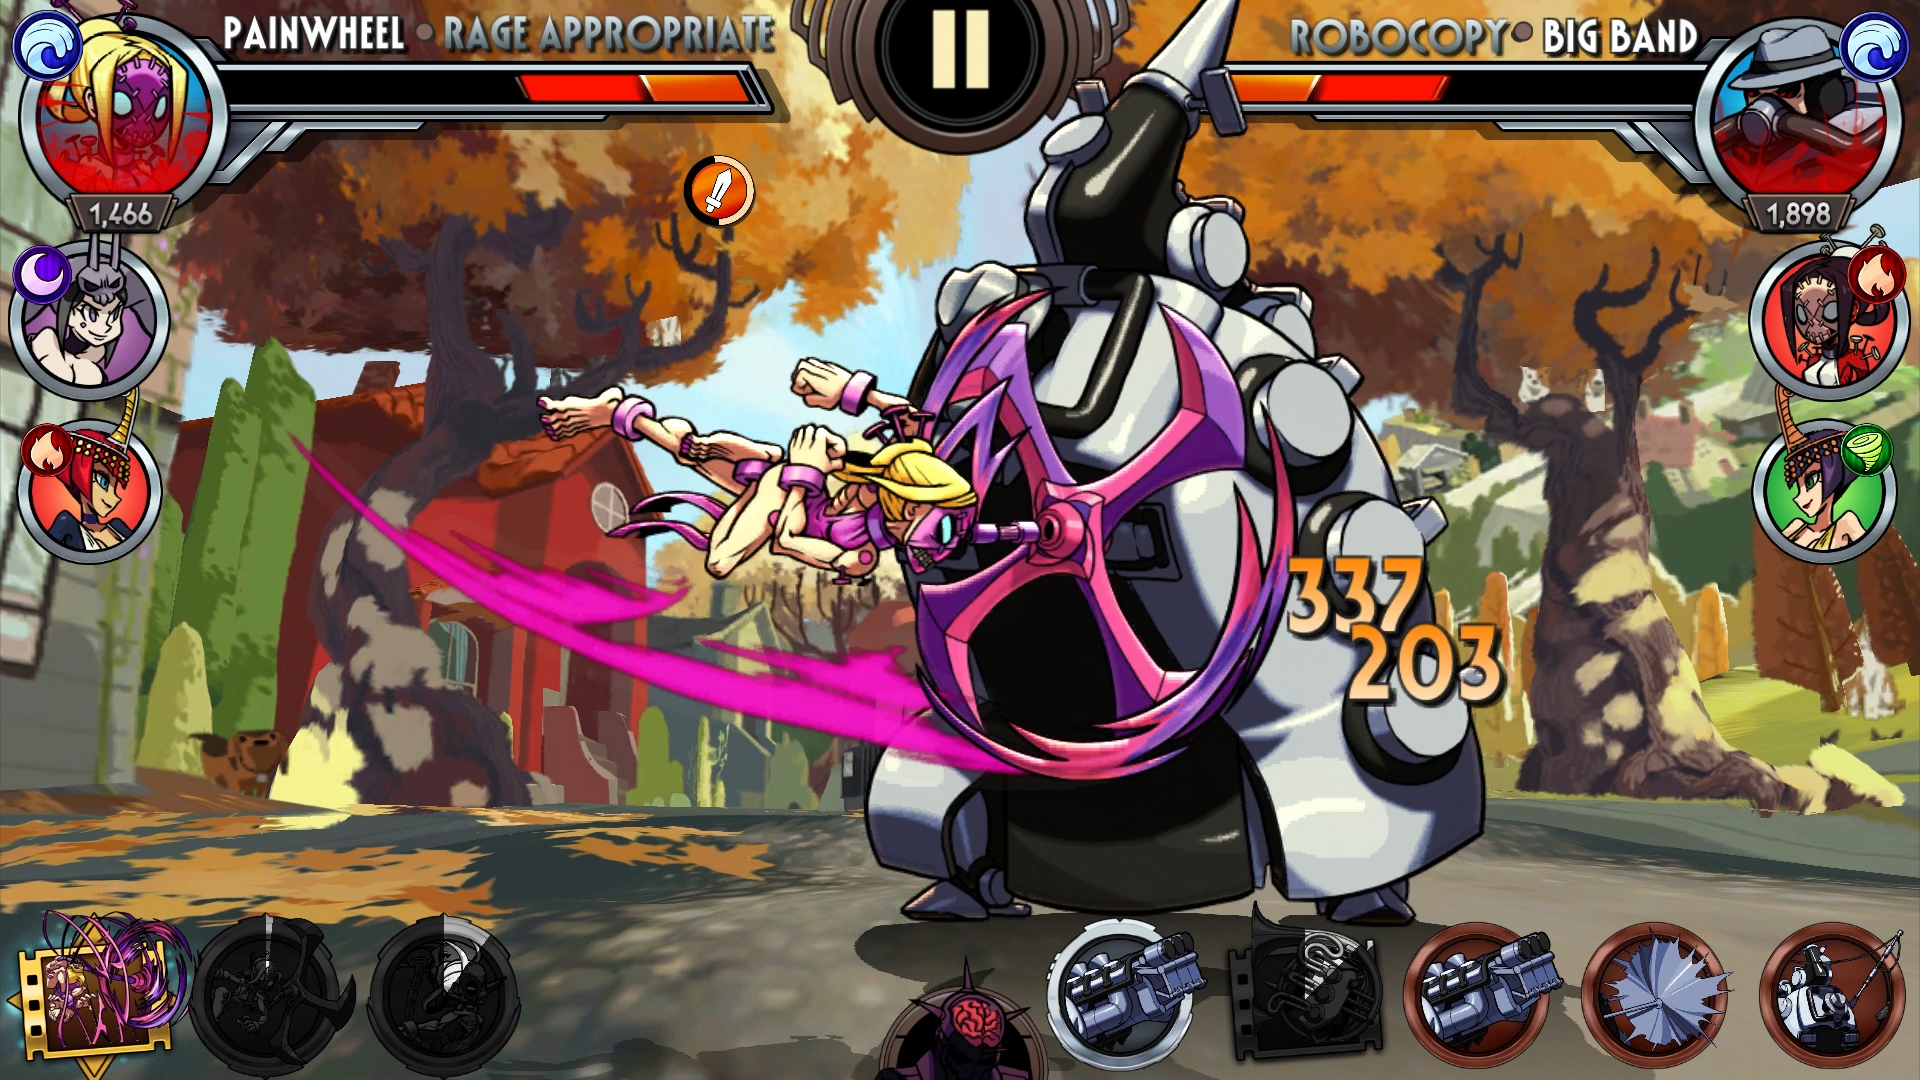 'Skullgirls' relaunches on mobile as developer ditches publisher